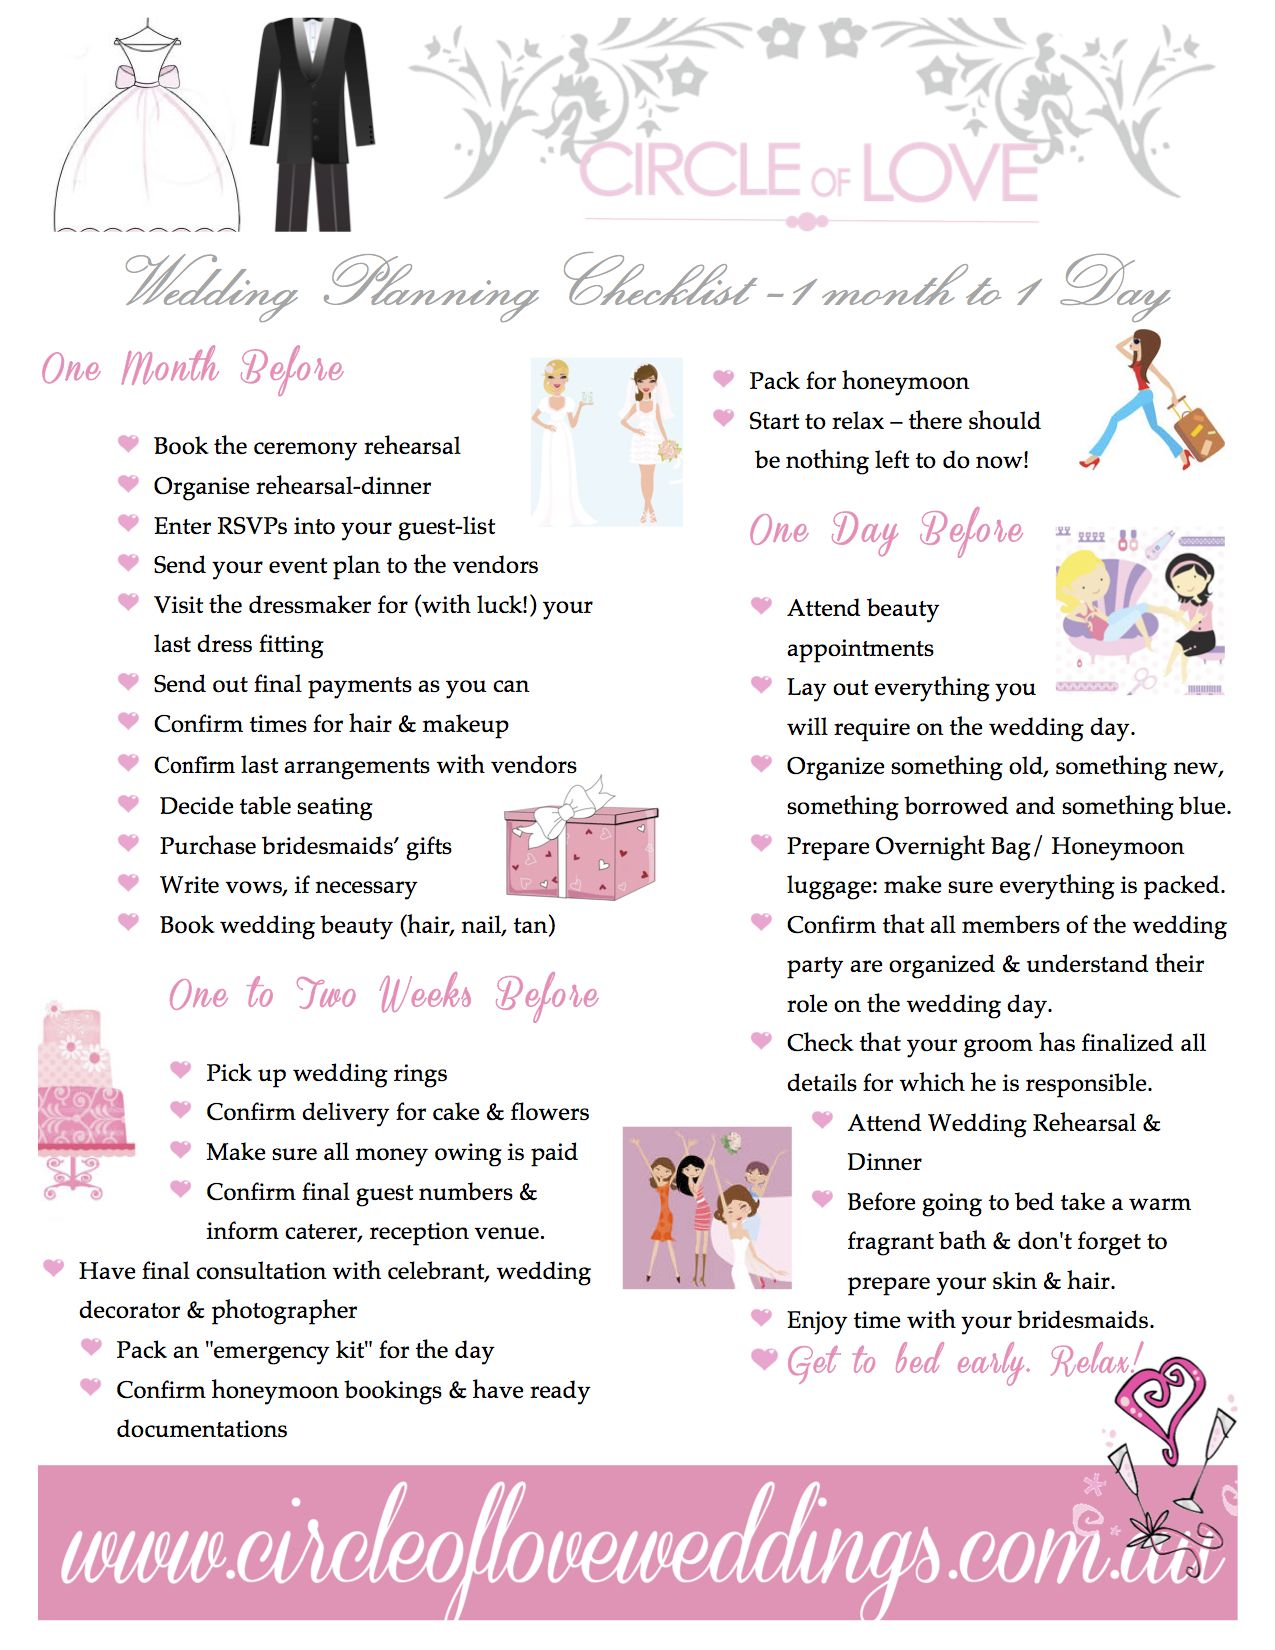 3) Wedding Planning checklist 1 month before Download our FREE ...